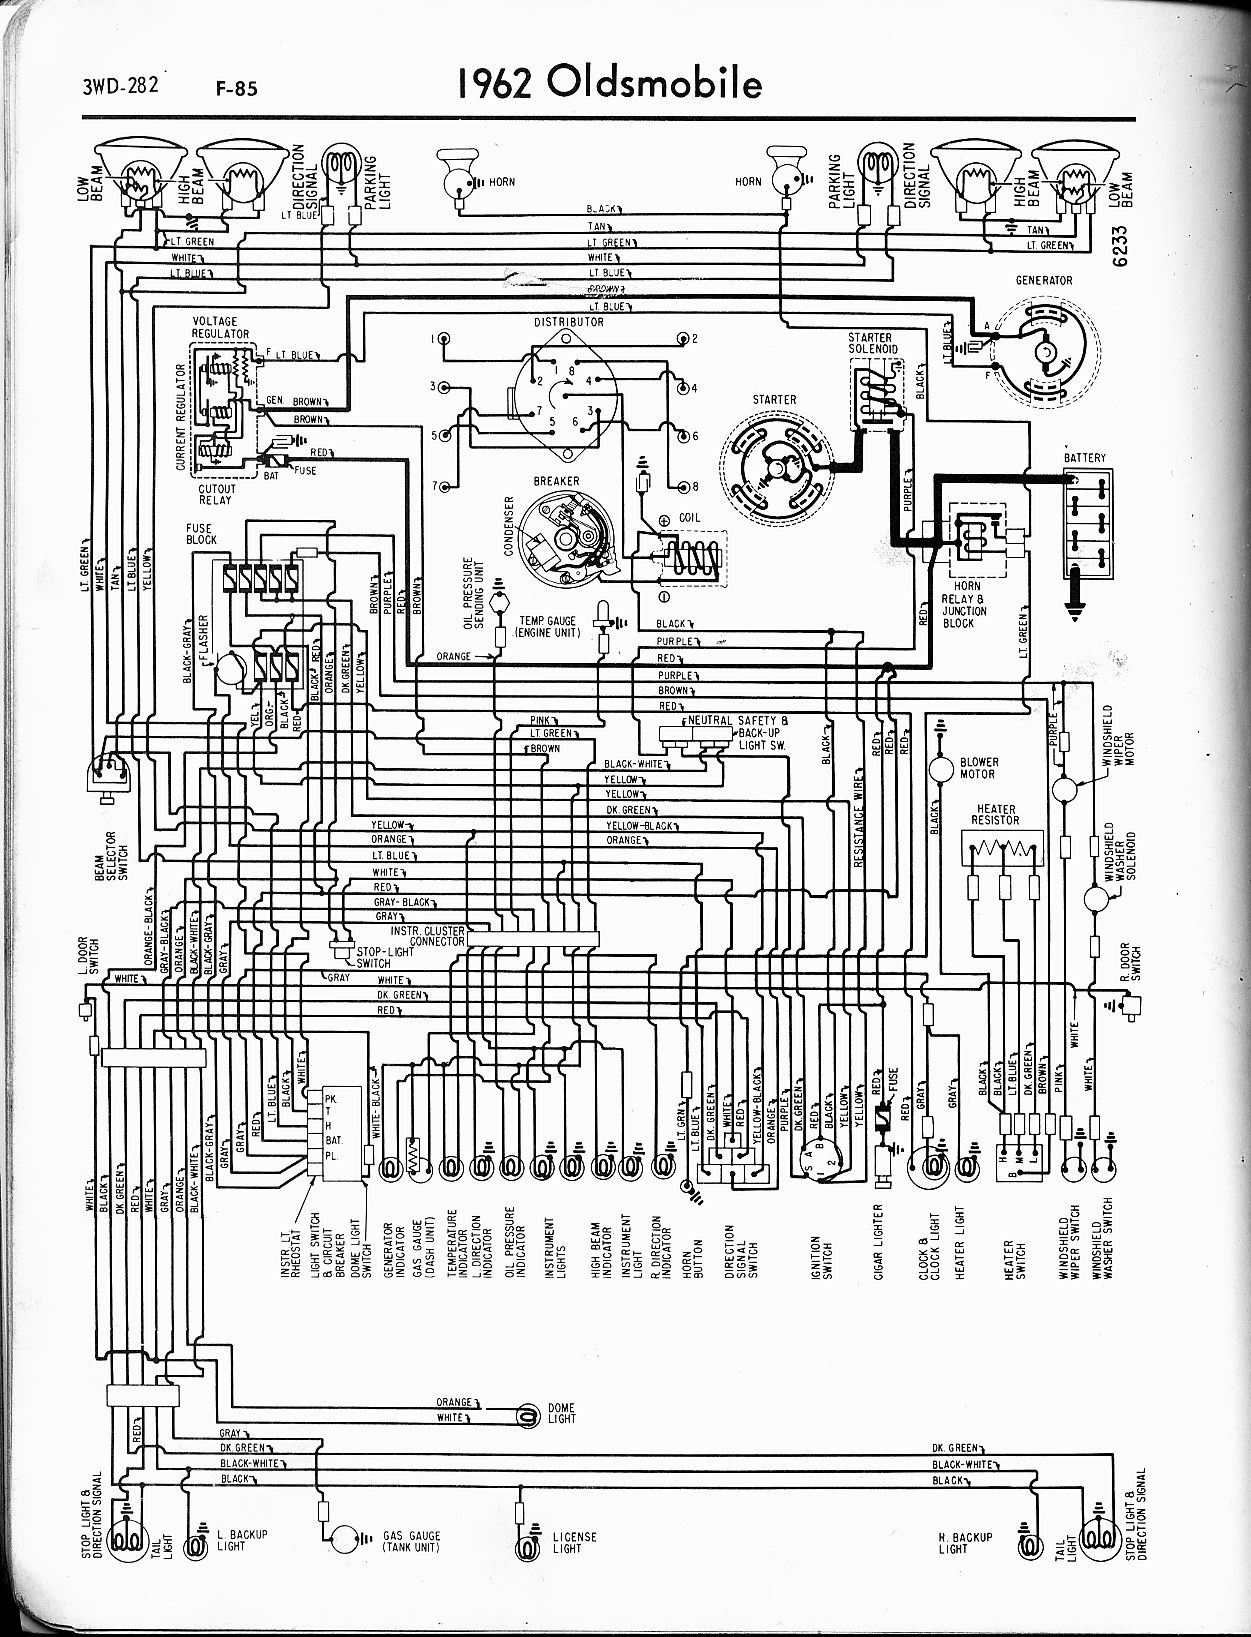 MWire5765 282 oldsmobile wiring diagrams the old car manual project GM Turn Signal Switch Diagram at bakdesigns.co